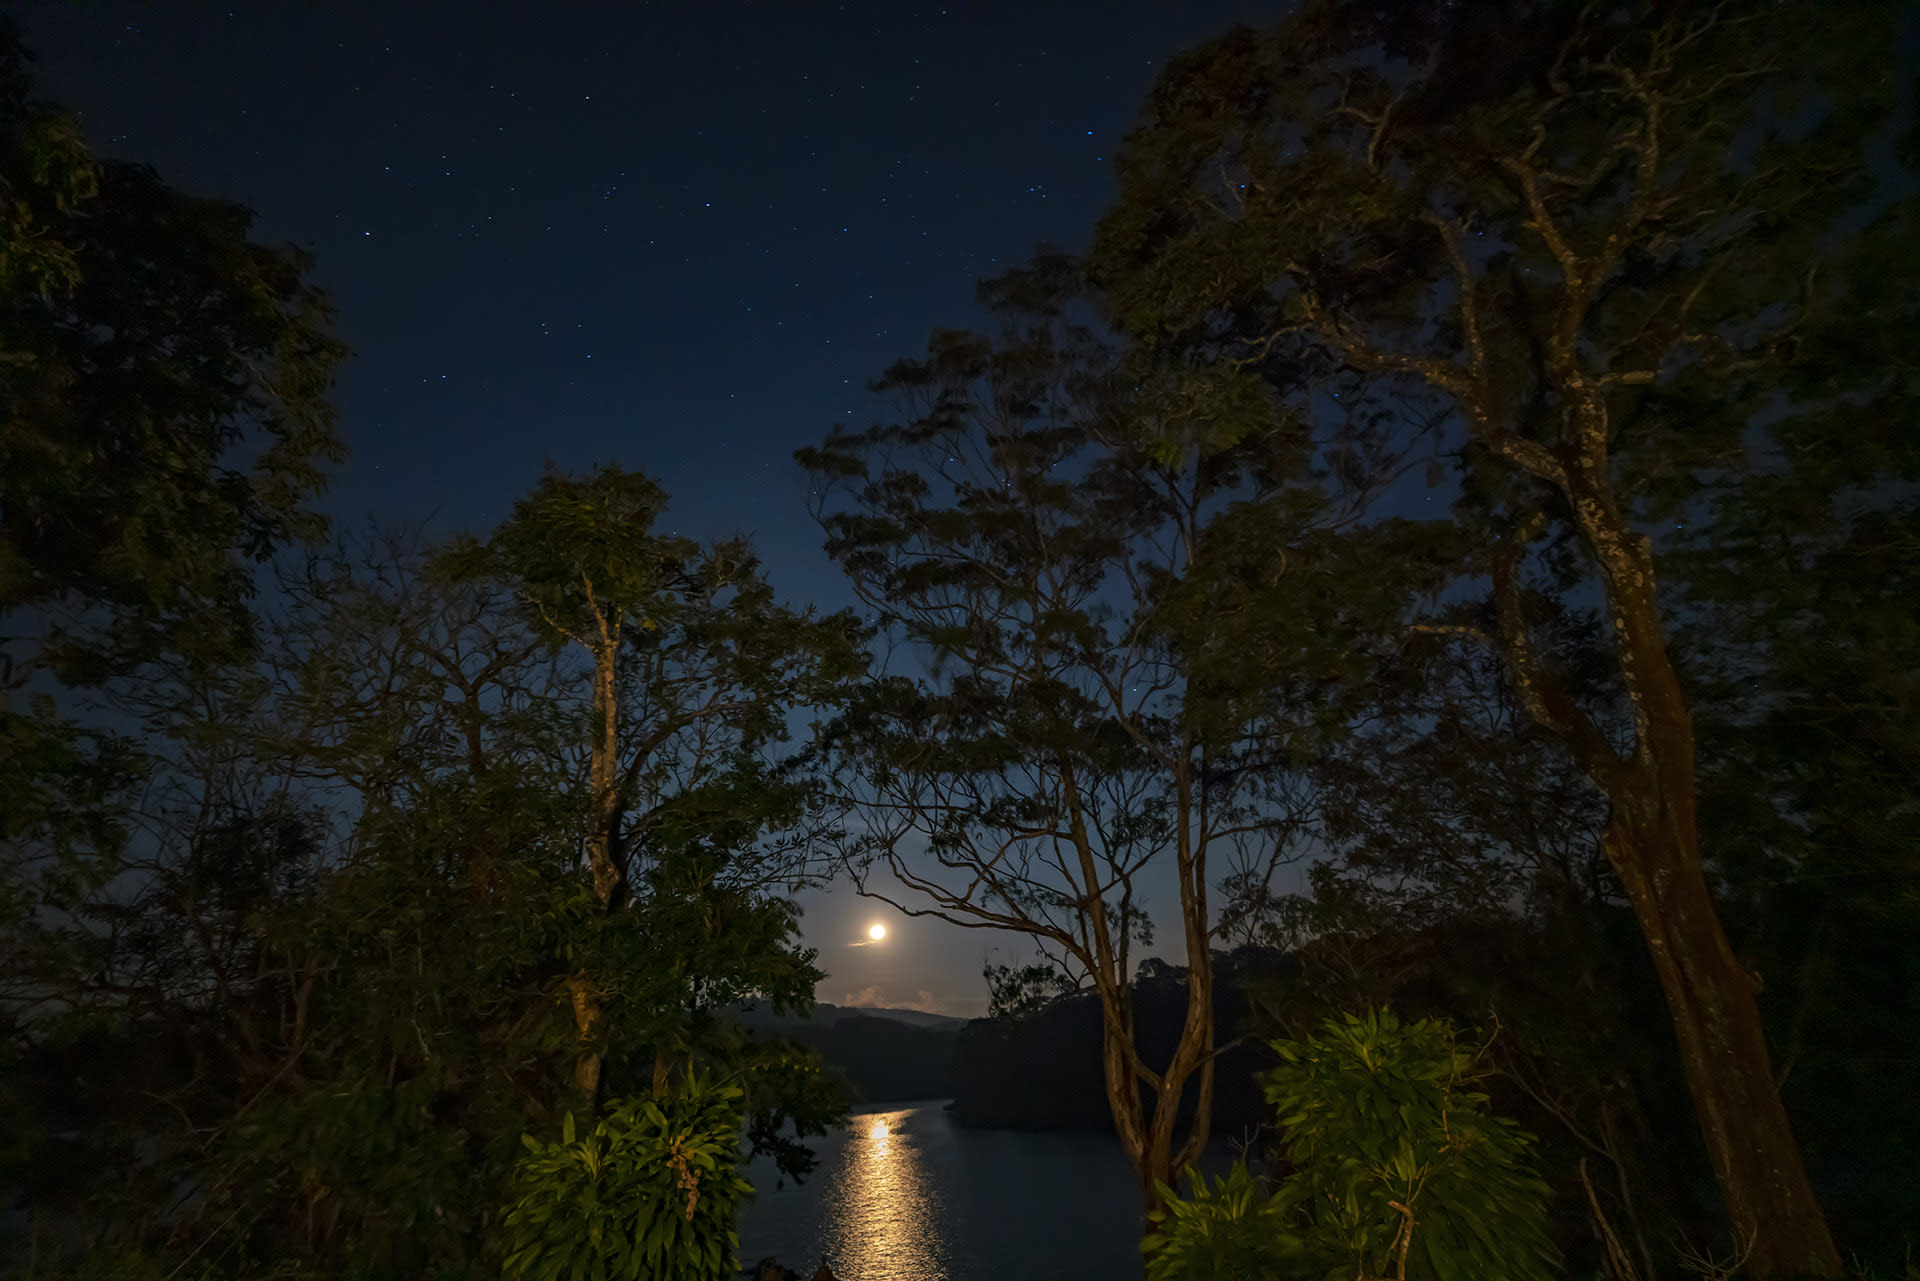 """Jungle Scout"", a night trekking programme offered by the reserve as part of its ecotourism initiatives allows tourists to appreciate the splendours of the reserve after dark. Accompanied by armed guards, visitors can explore a serene stretch of the reserve from 7 pm to 4 am."